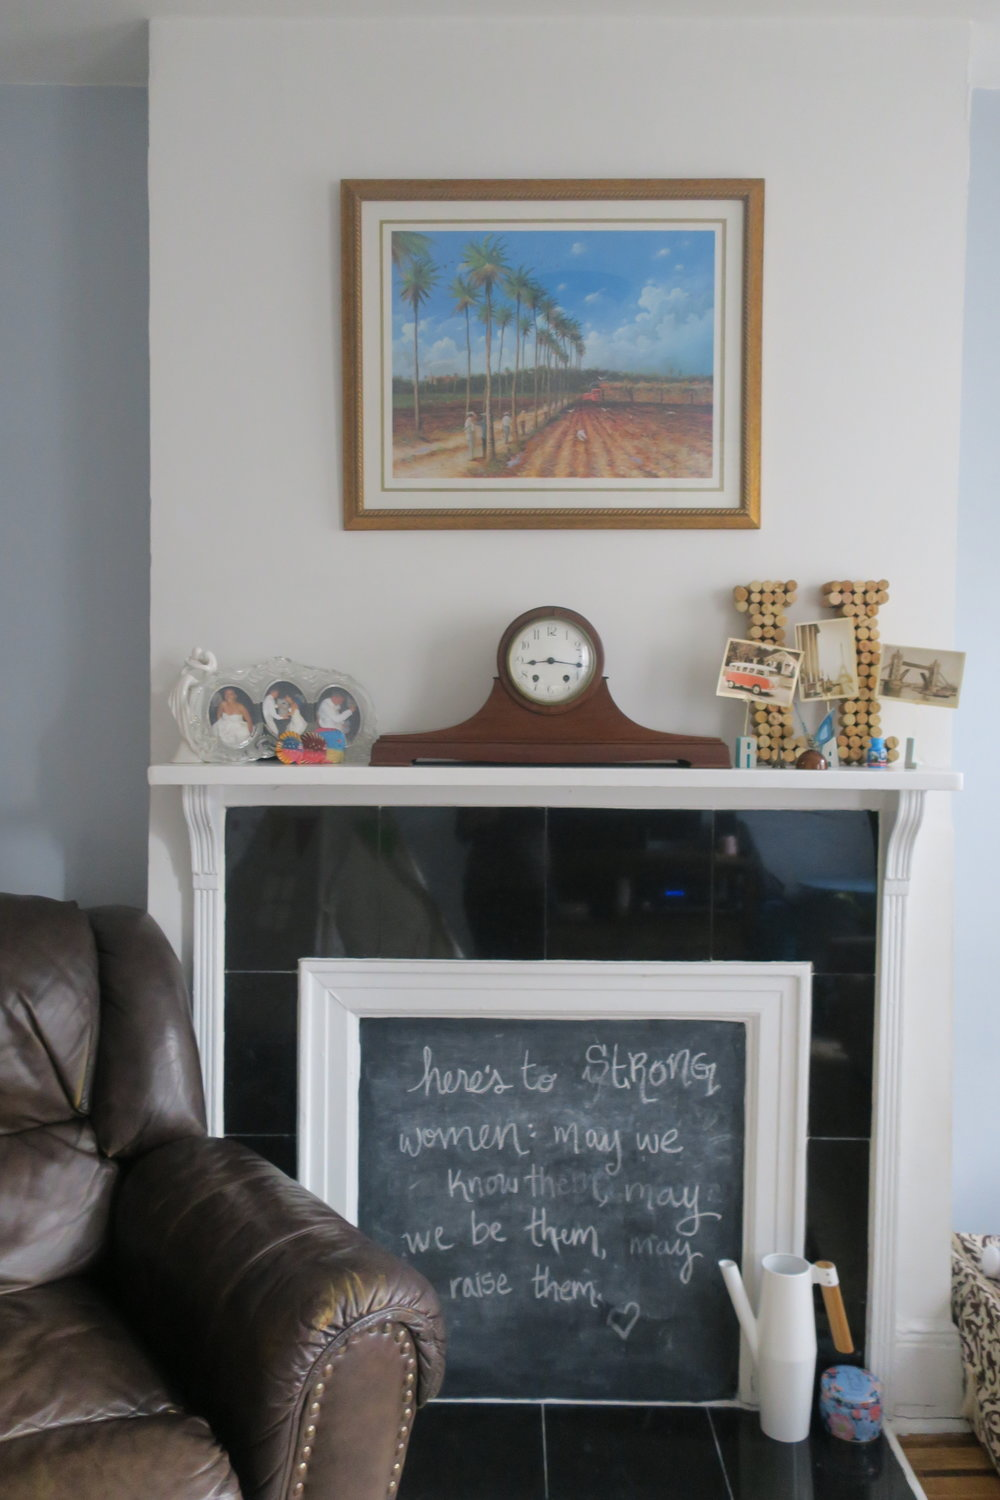 Love changing the chalkboard with the seasons. This was in honor of International Women's Day and Women's History Month! The clock is a family heirloom from Robby's grandparents. The painting is of the town of Aguirre, Puerto Rico where my Grandma Lucy grew up. (The three little fish by the clock represent Rob, me and Lucie.)